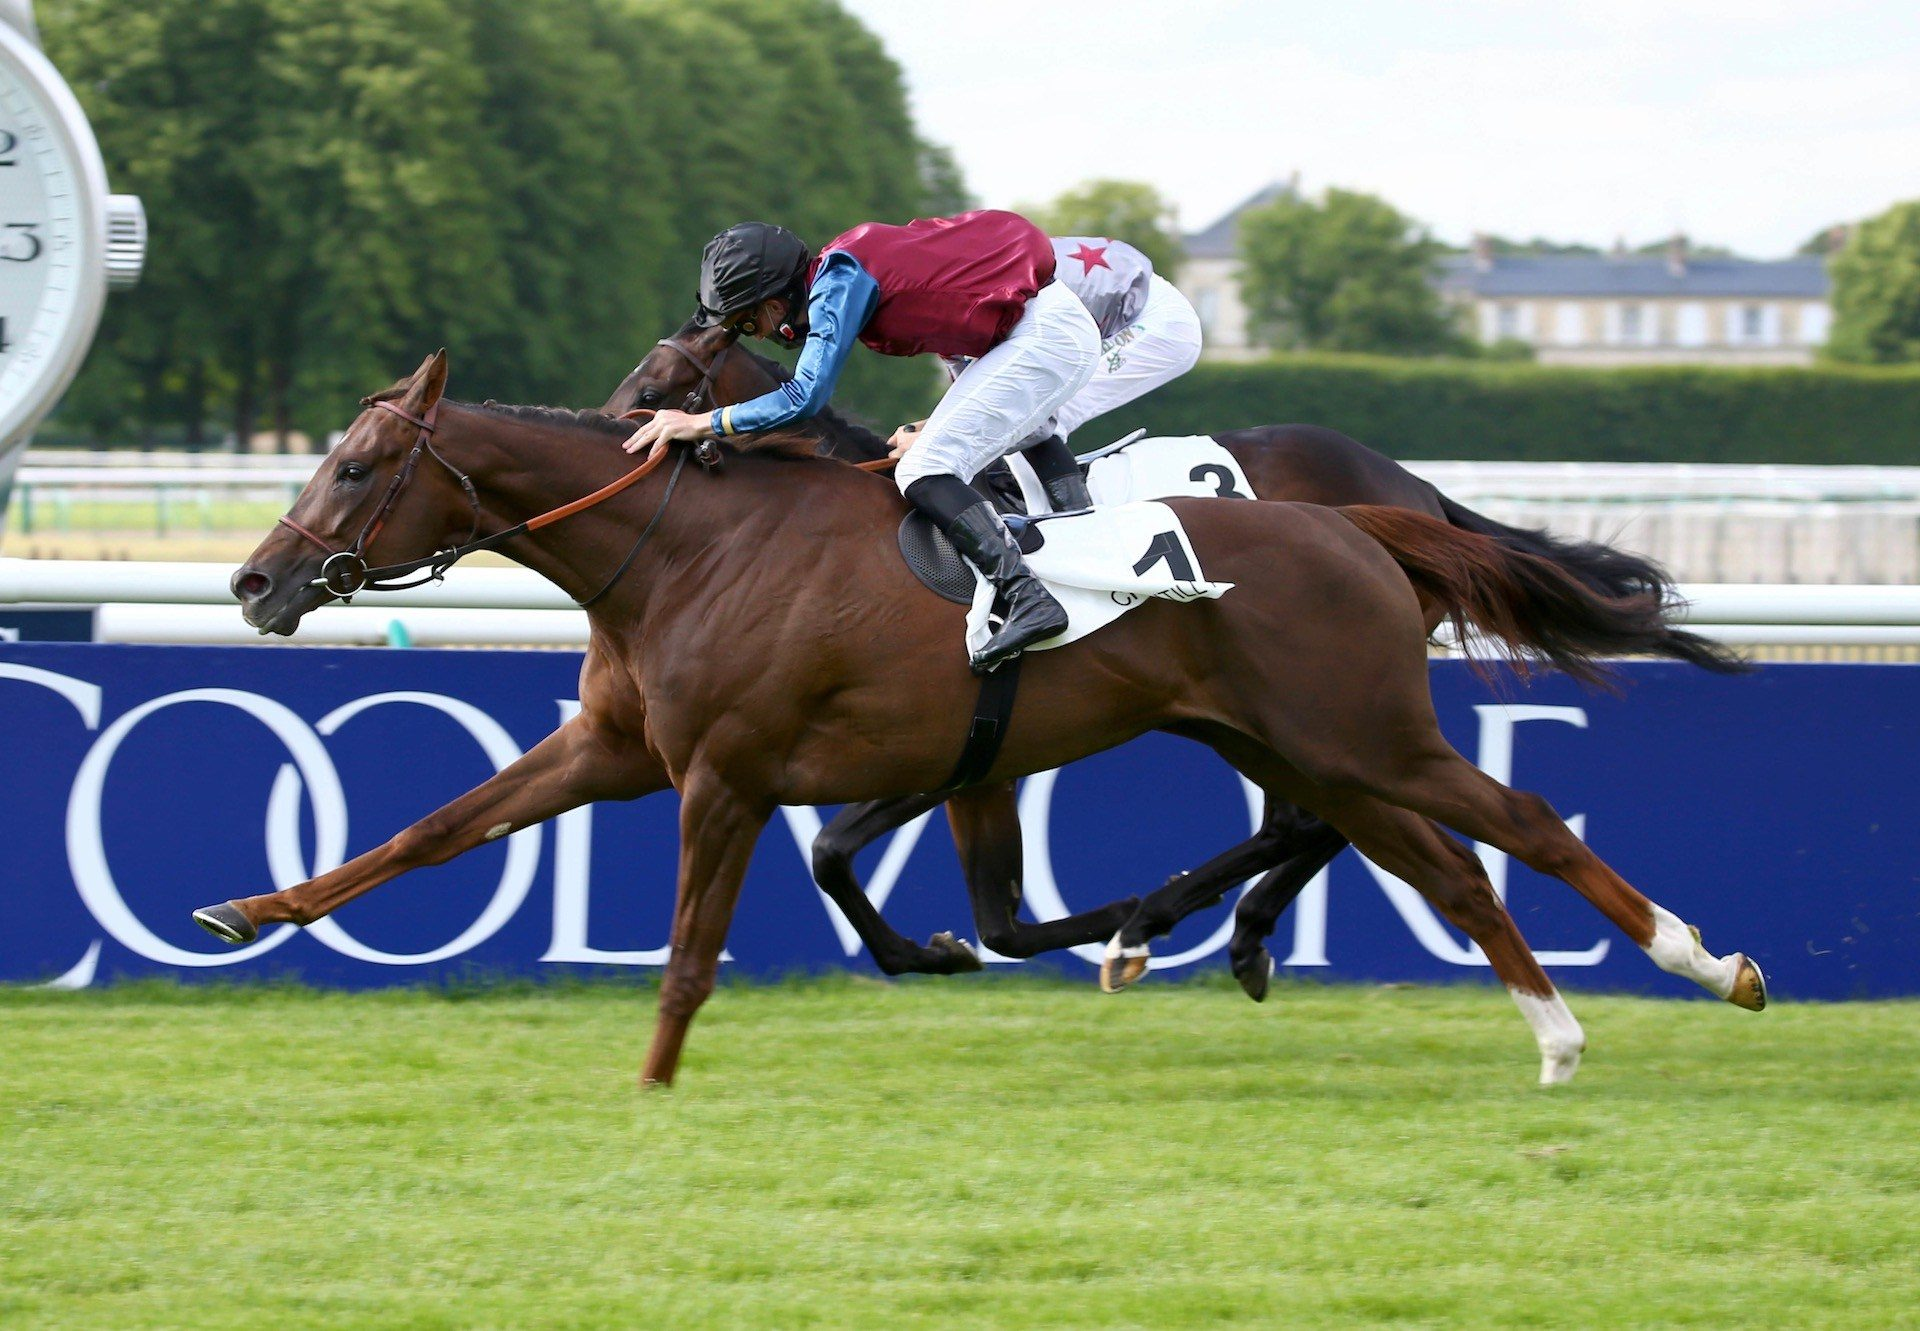 Maid Up (Mastercraftsman) winning the G3 March Stakes at Goodwood